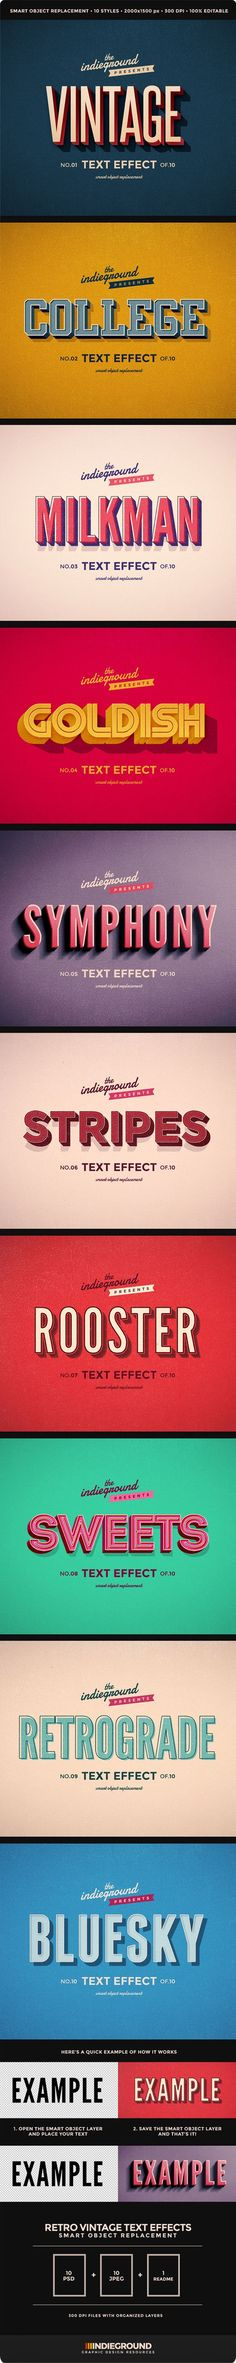 Retro Vintage Text Effects - Text Effects Actions. Only $5 for layered psd files!: